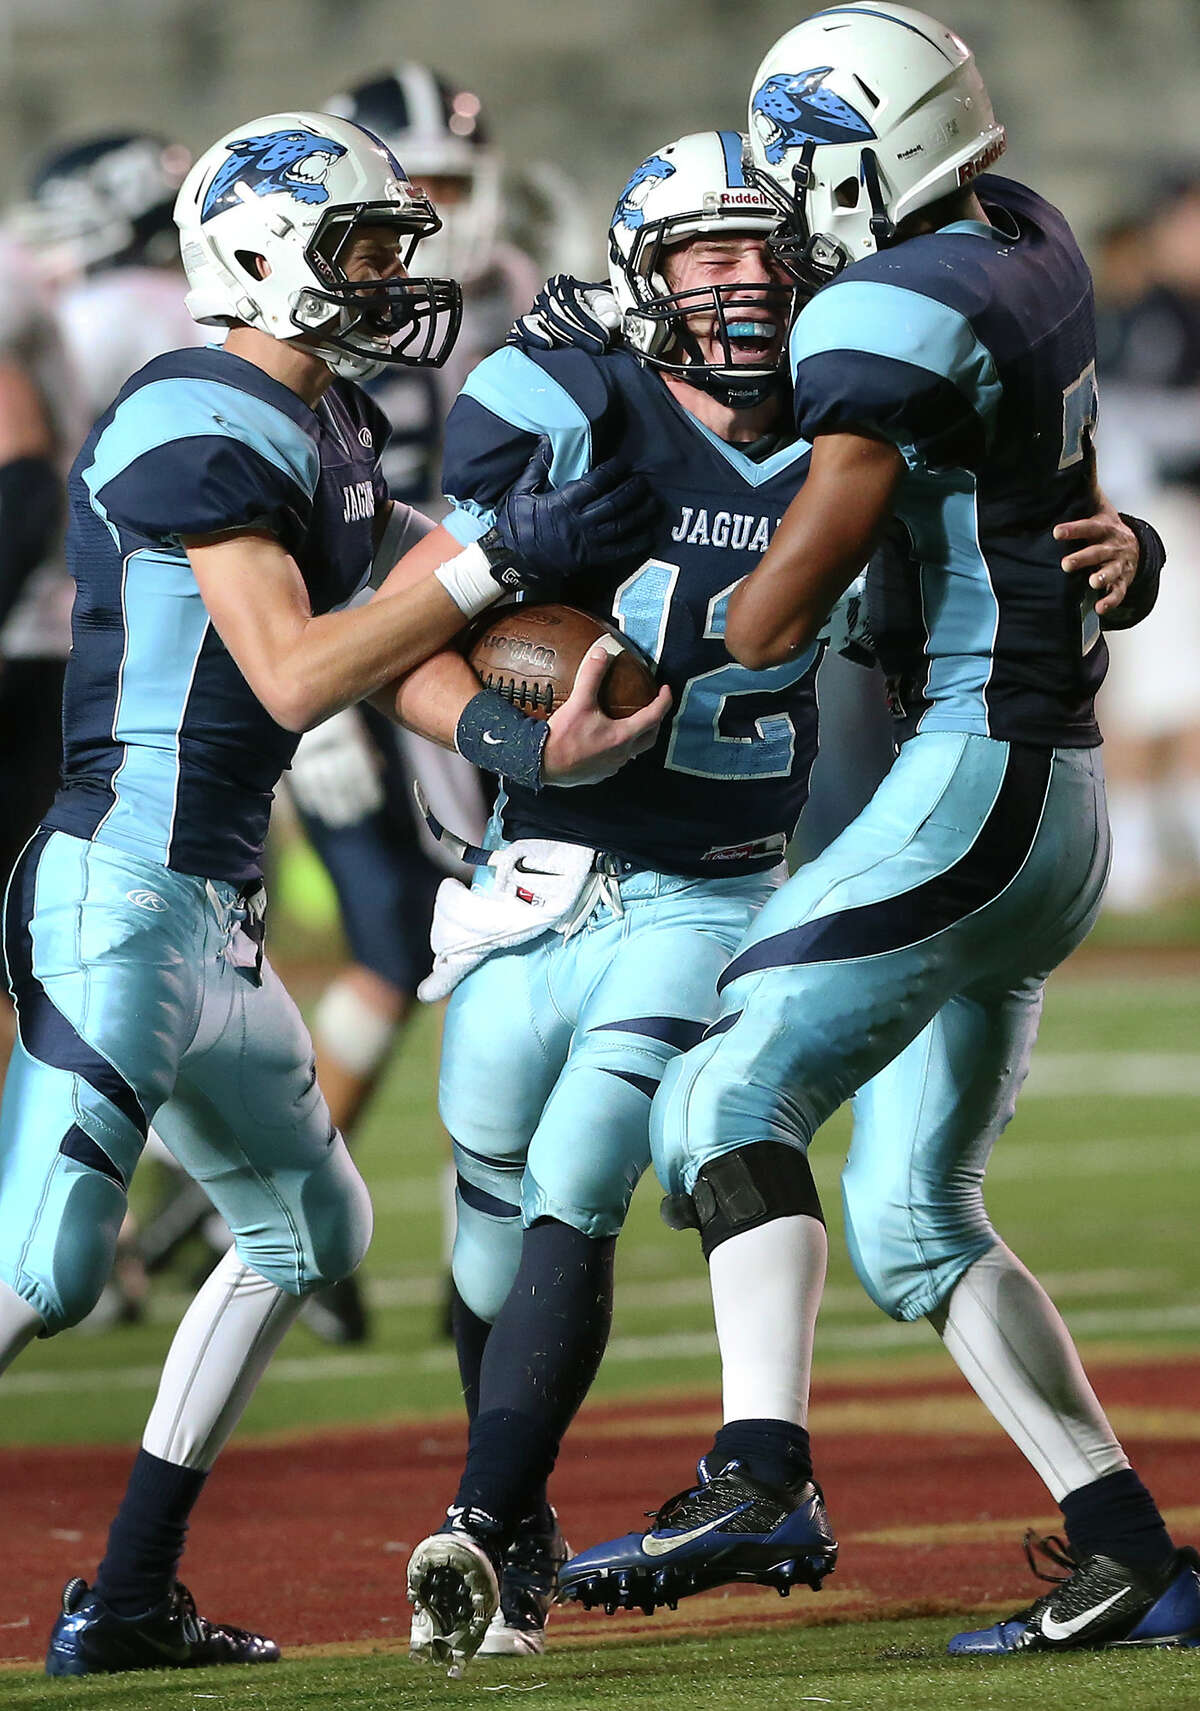 Jaguar quarterback Hunter Rittimann celebrates with the game ball as teammates Coleman Fowler (left) and Darion McElhannon converge as Johnson beats Smithson Valley 49-45 in the first round of football playoffs at Bobcat Stadium in San Marcos on November 15, 2013.